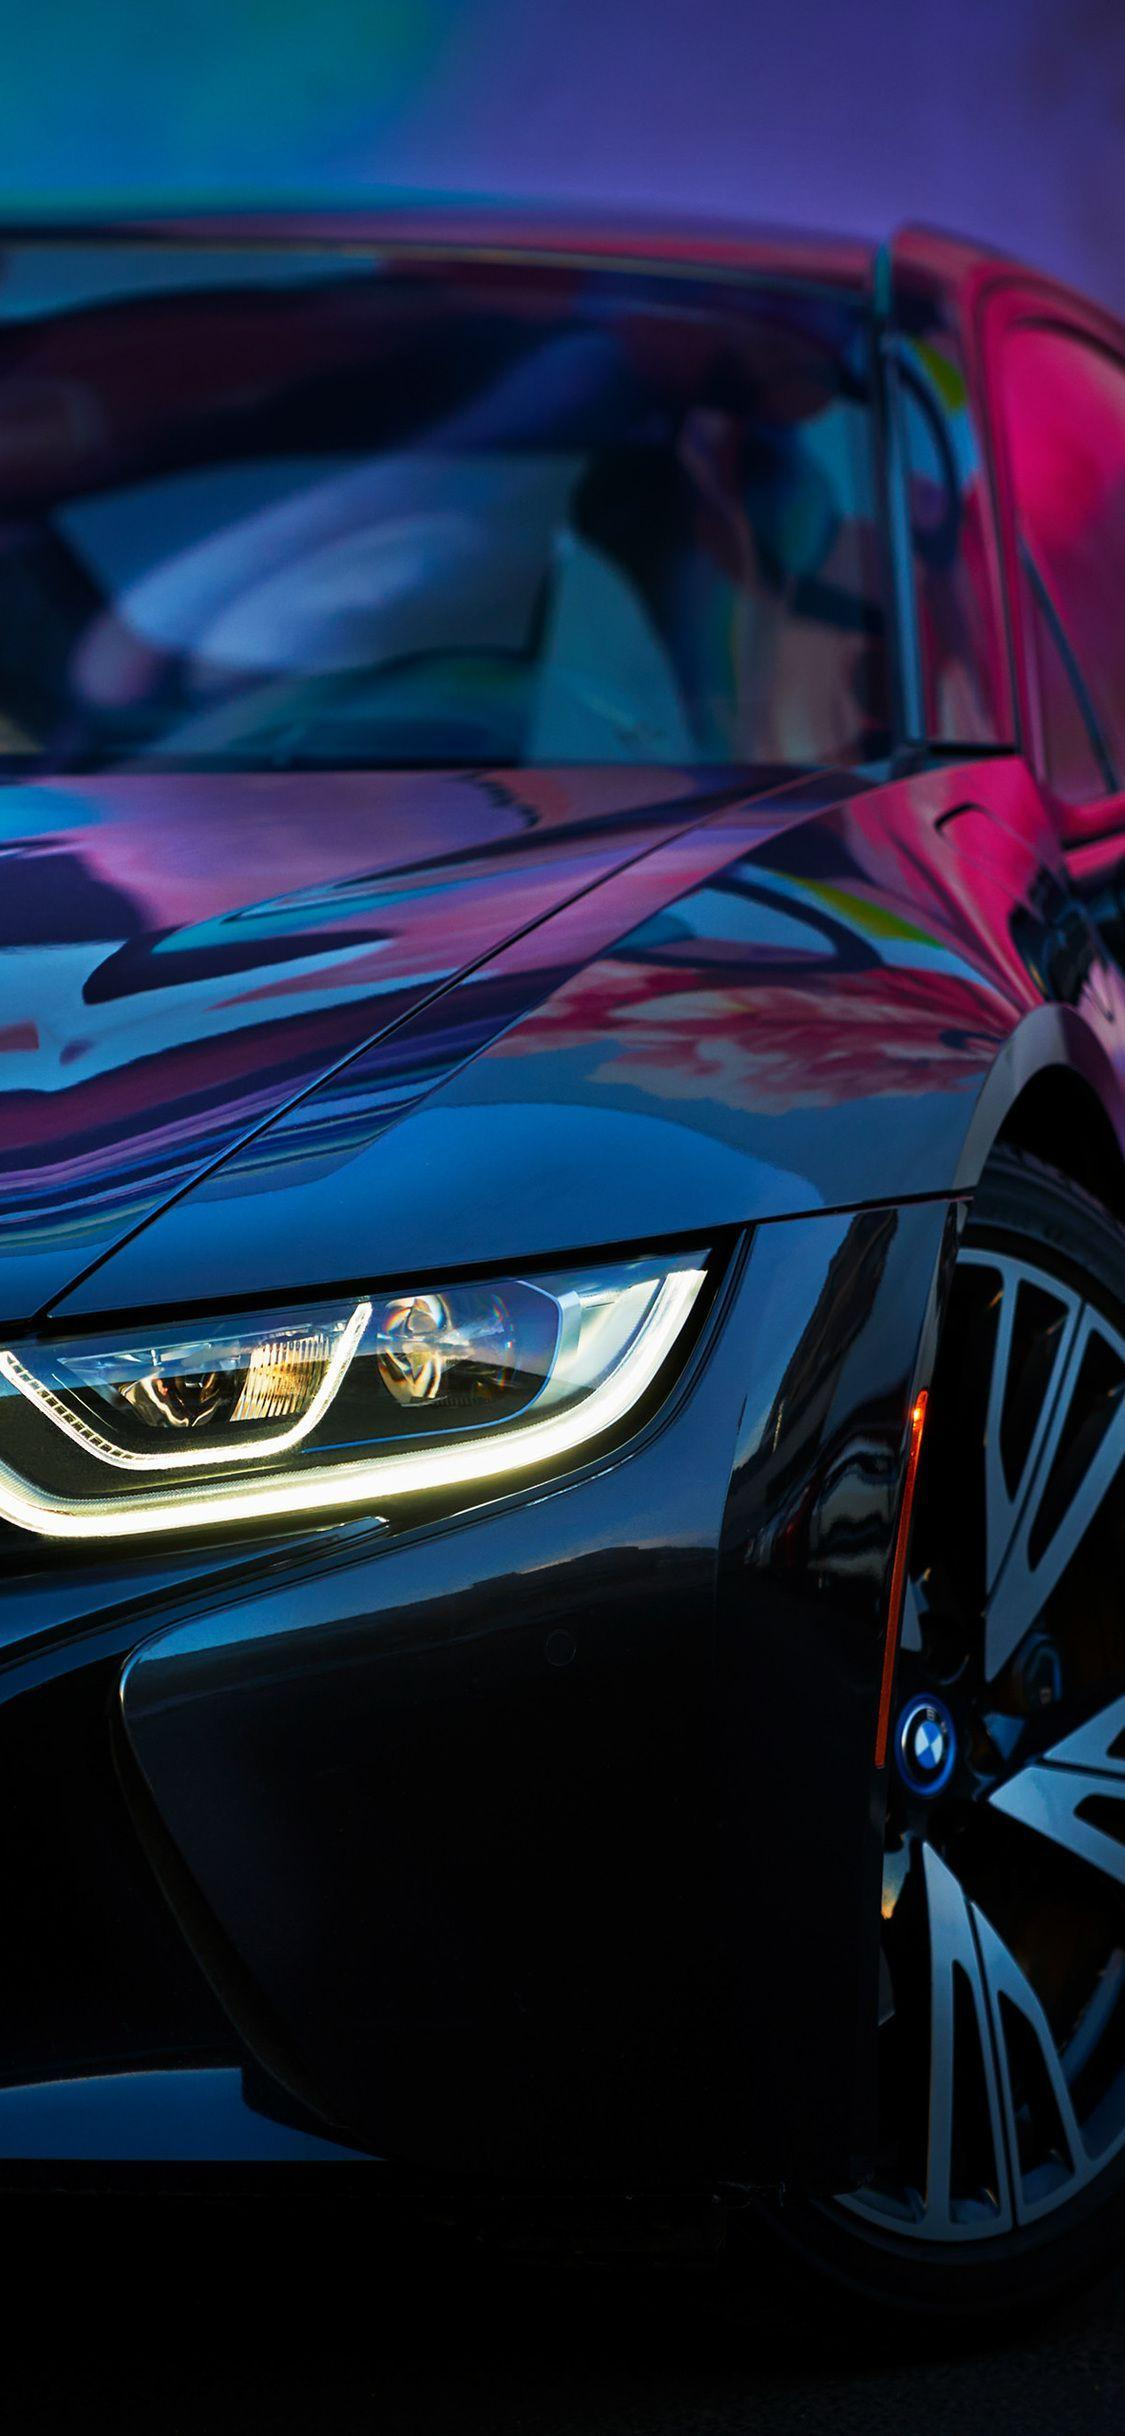 Iphone Bmw Wallpapers Wallpaper Cave